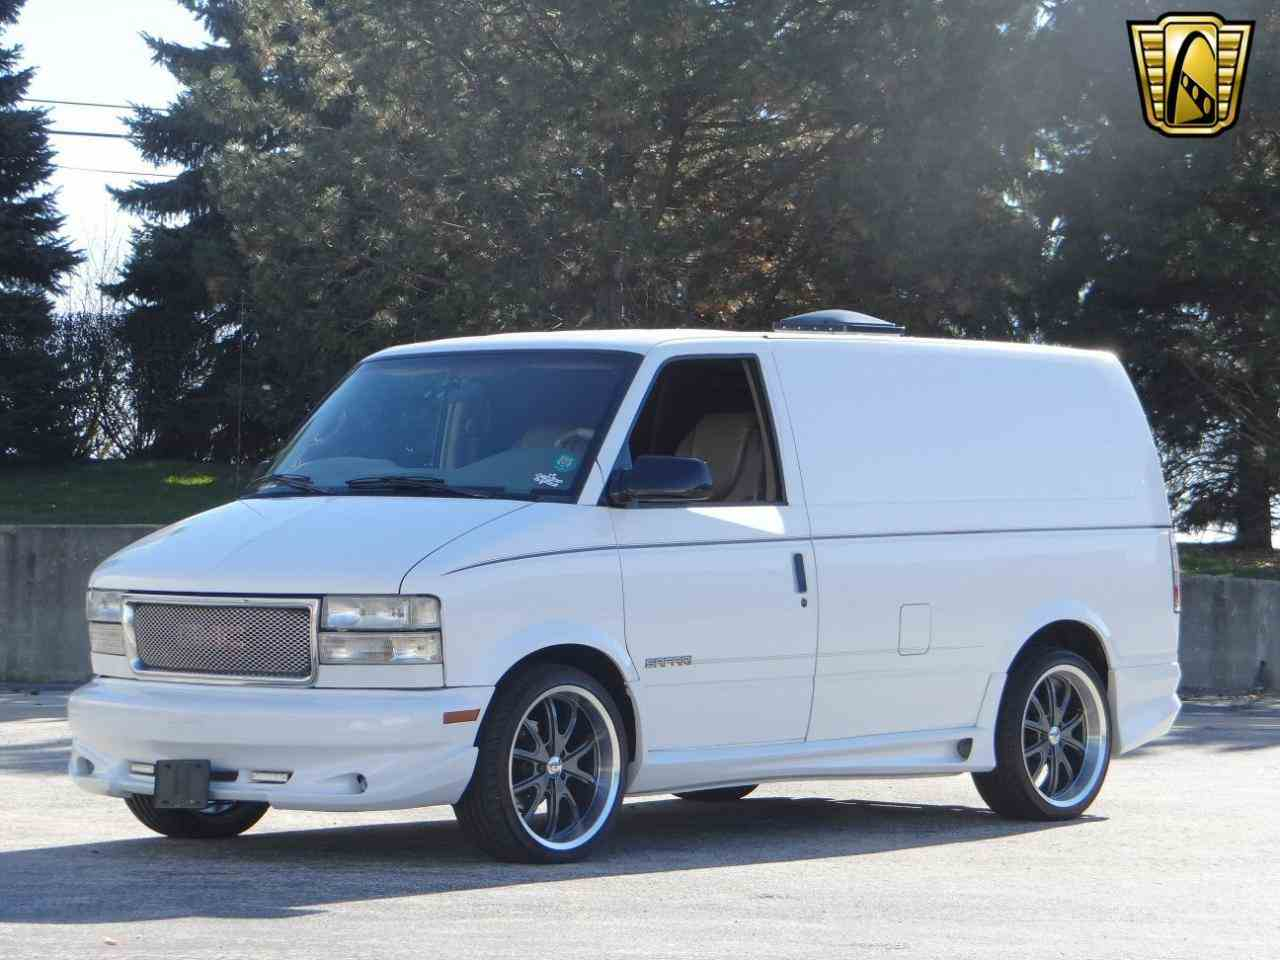 Large Picture of '98 GMC Safari located in Illinois Offered by Gateway Classic Cars - Chicago - KF2Q